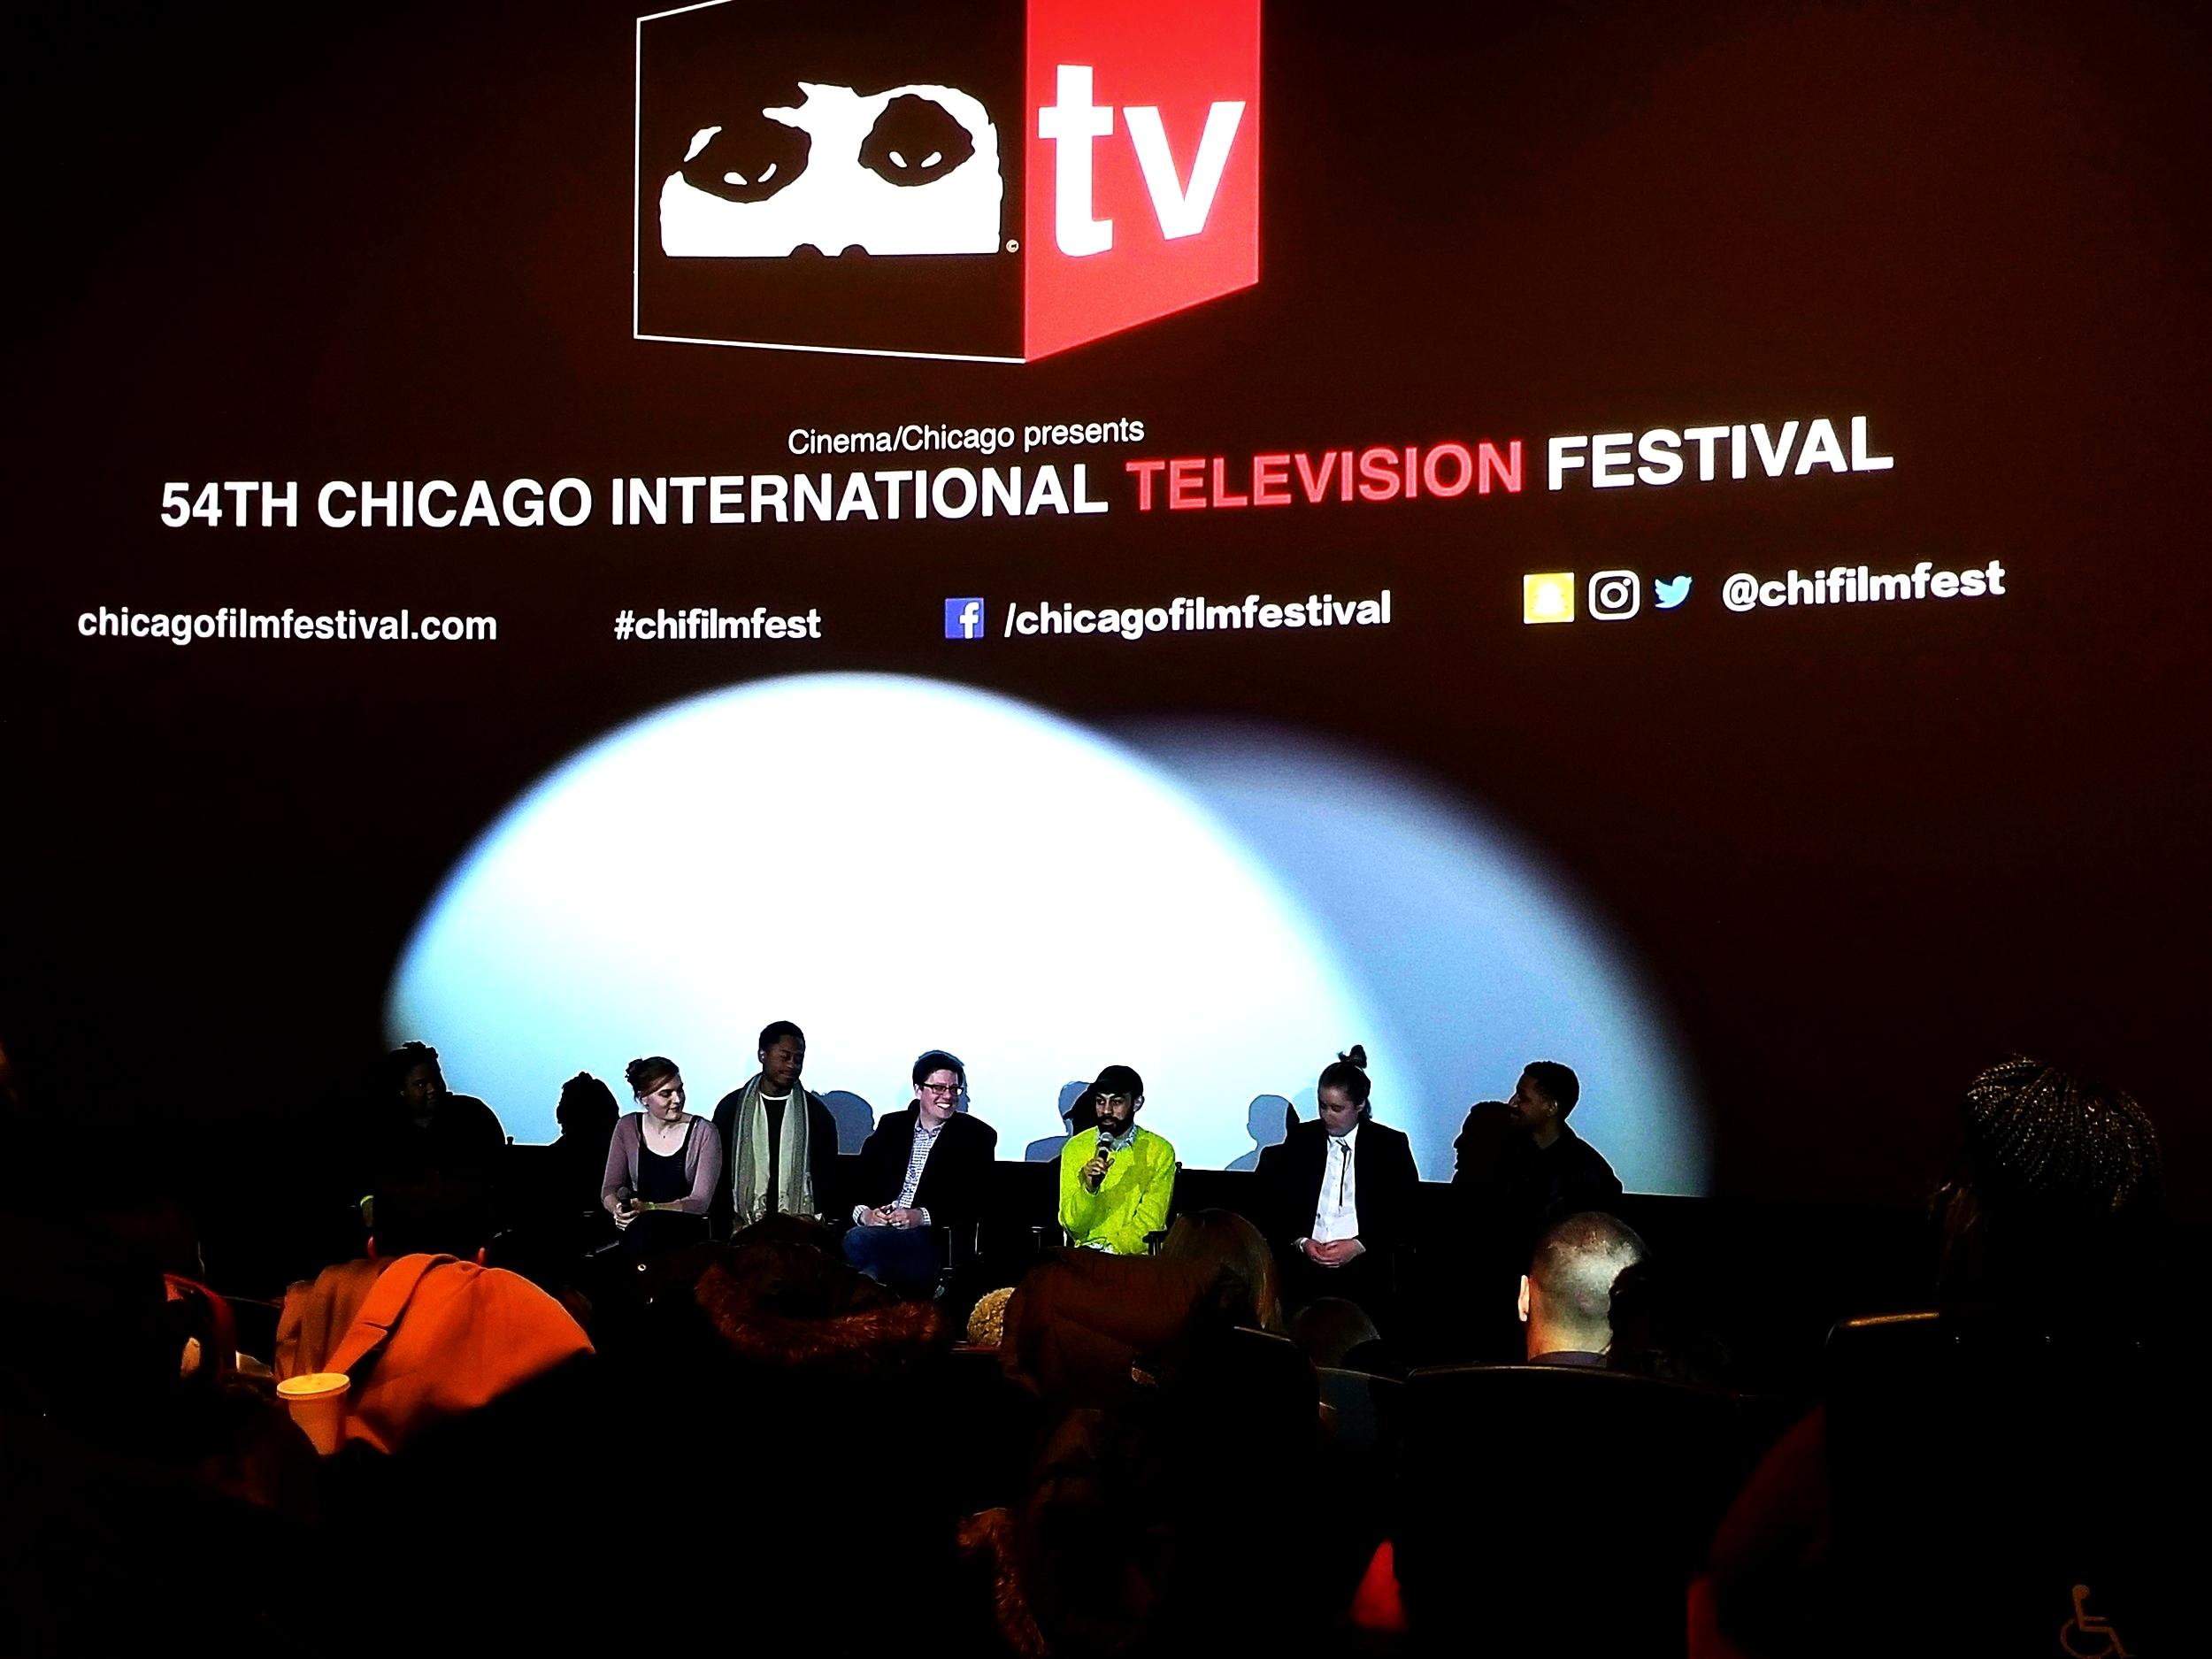 WOKE TV Q-and-A session at Chicago International Television Festival